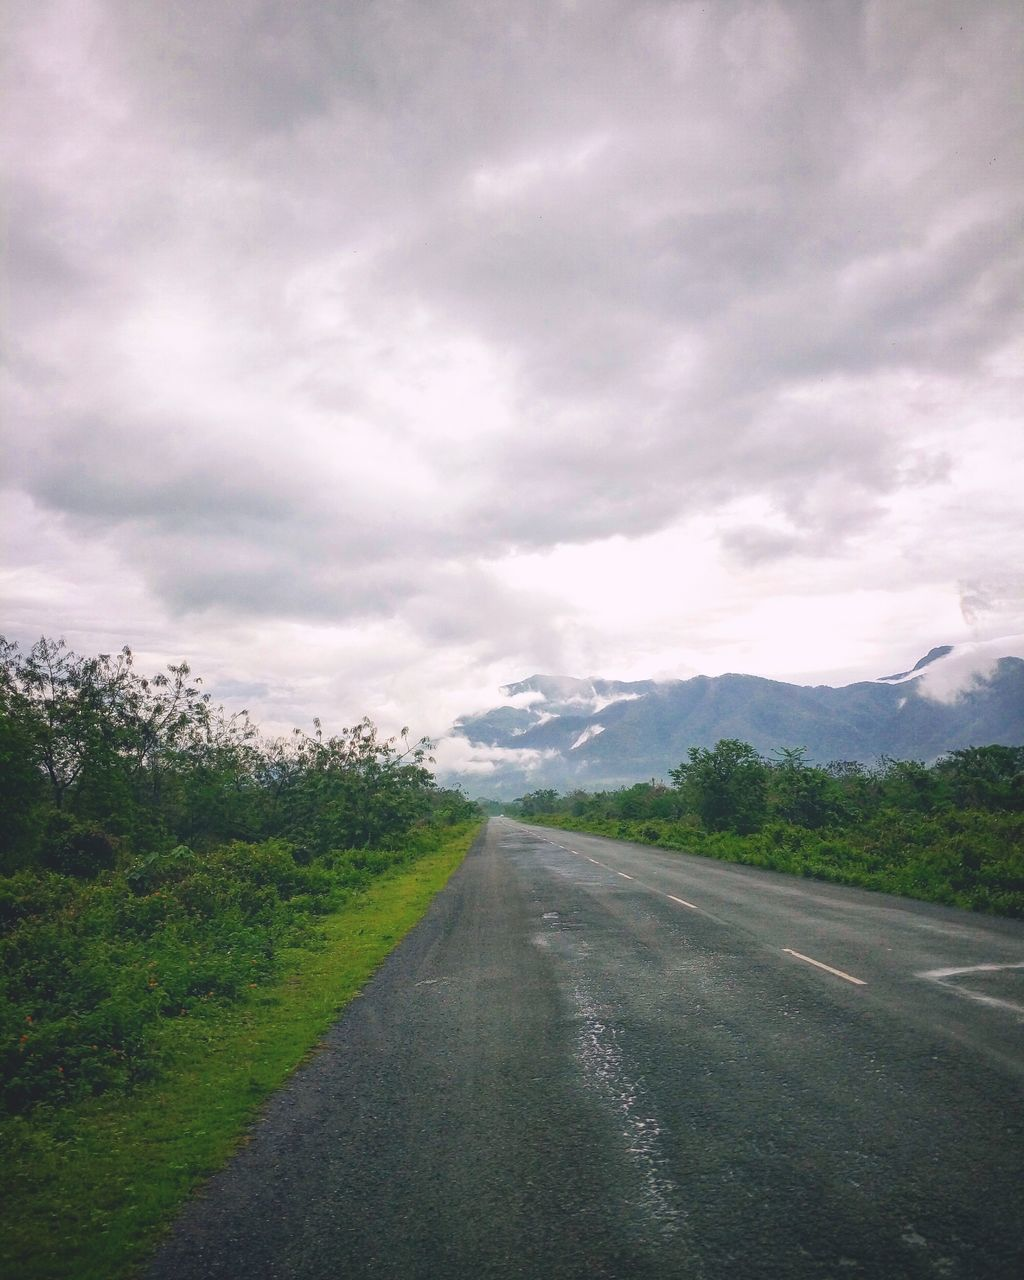 road, the way forward, sky, landscape, diminishing perspective, nature, cloud - sky, transportation, no people, mountain, scenics, day, outdoors, tranquility, tranquil scene, tree, beauty in nature